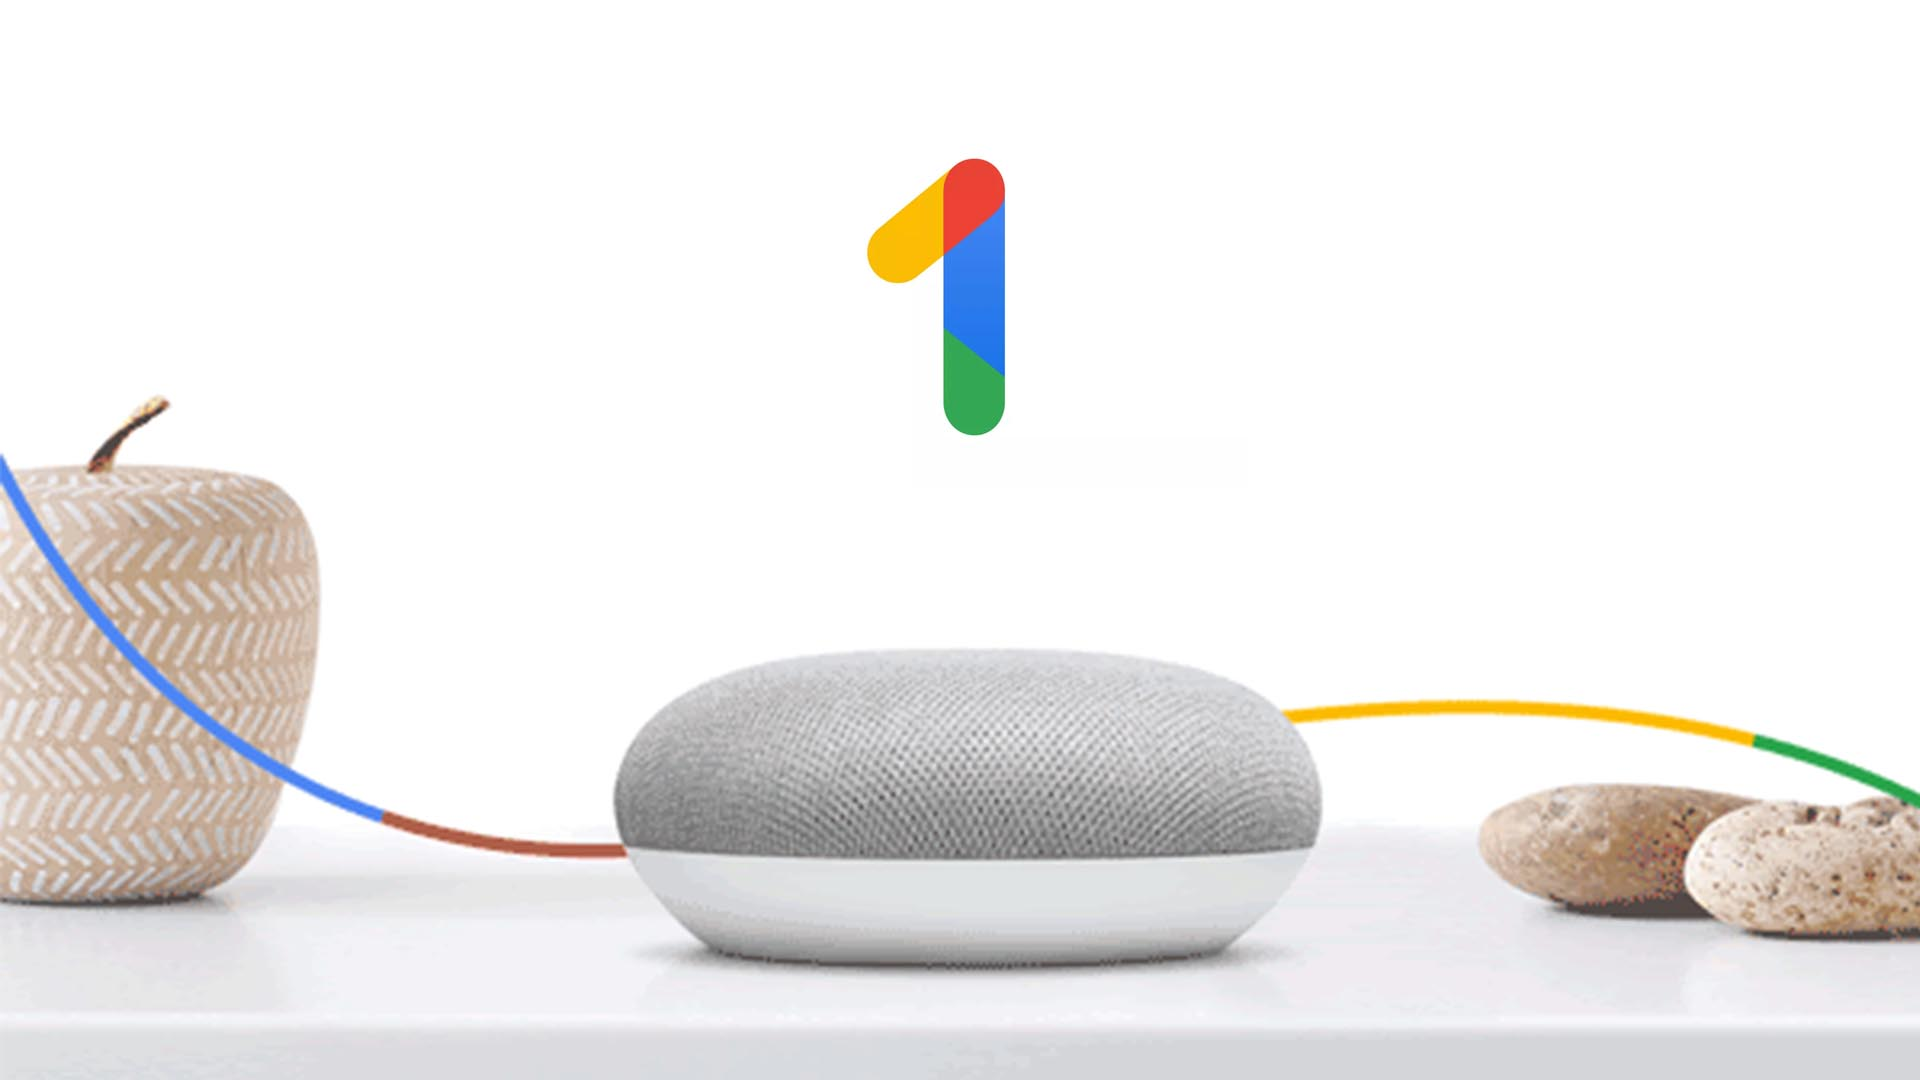 Google One is offering a free Nest Mini if you upgrade to their 2TB storage plan